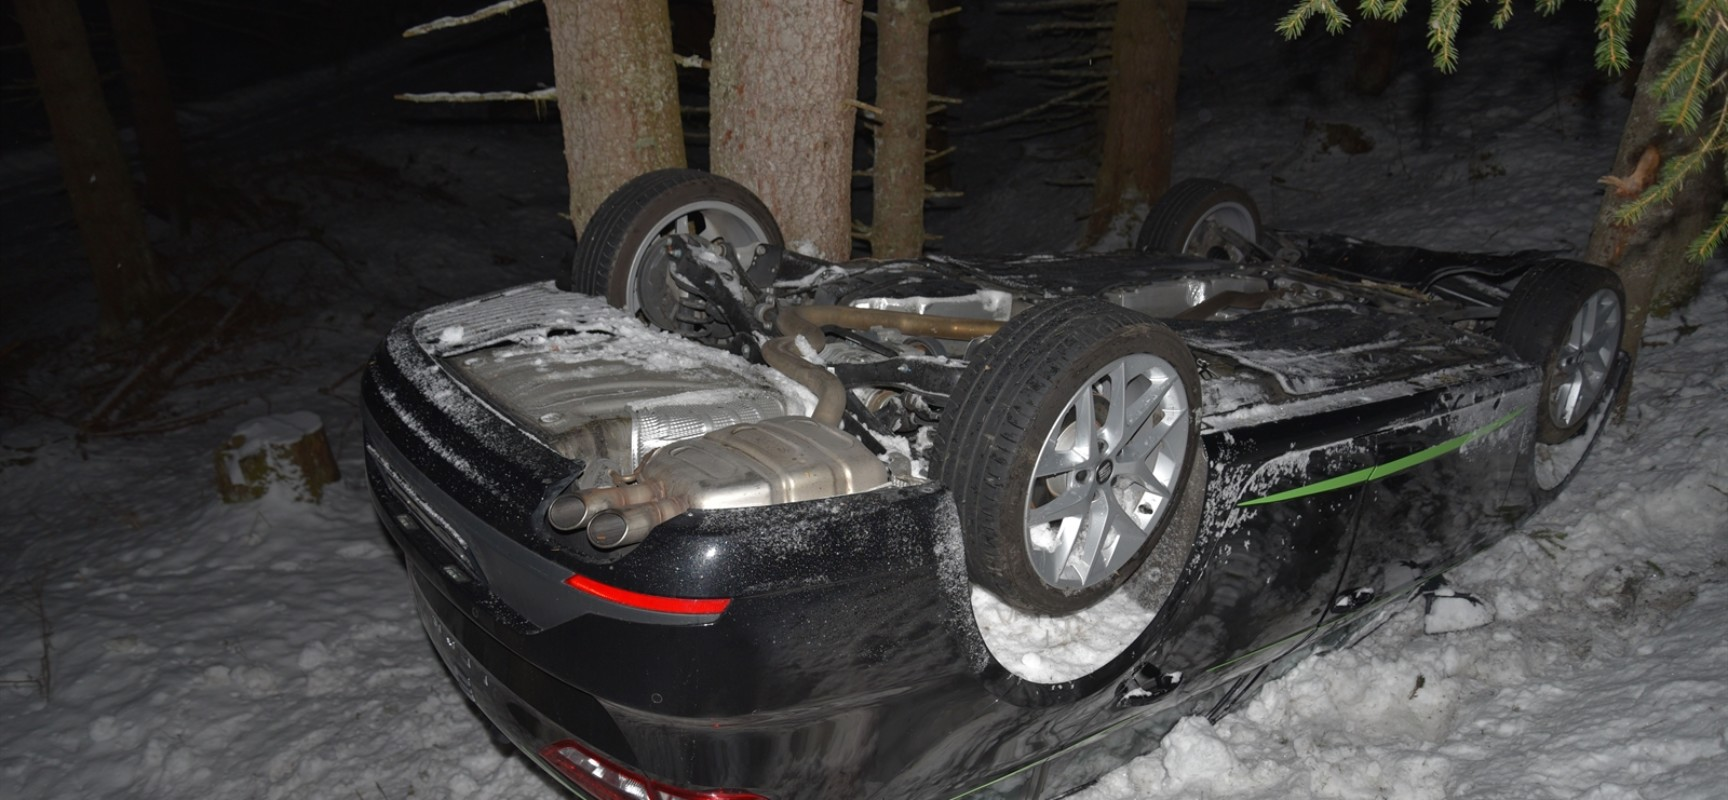 Unfall in Tschappina – Totalschaden